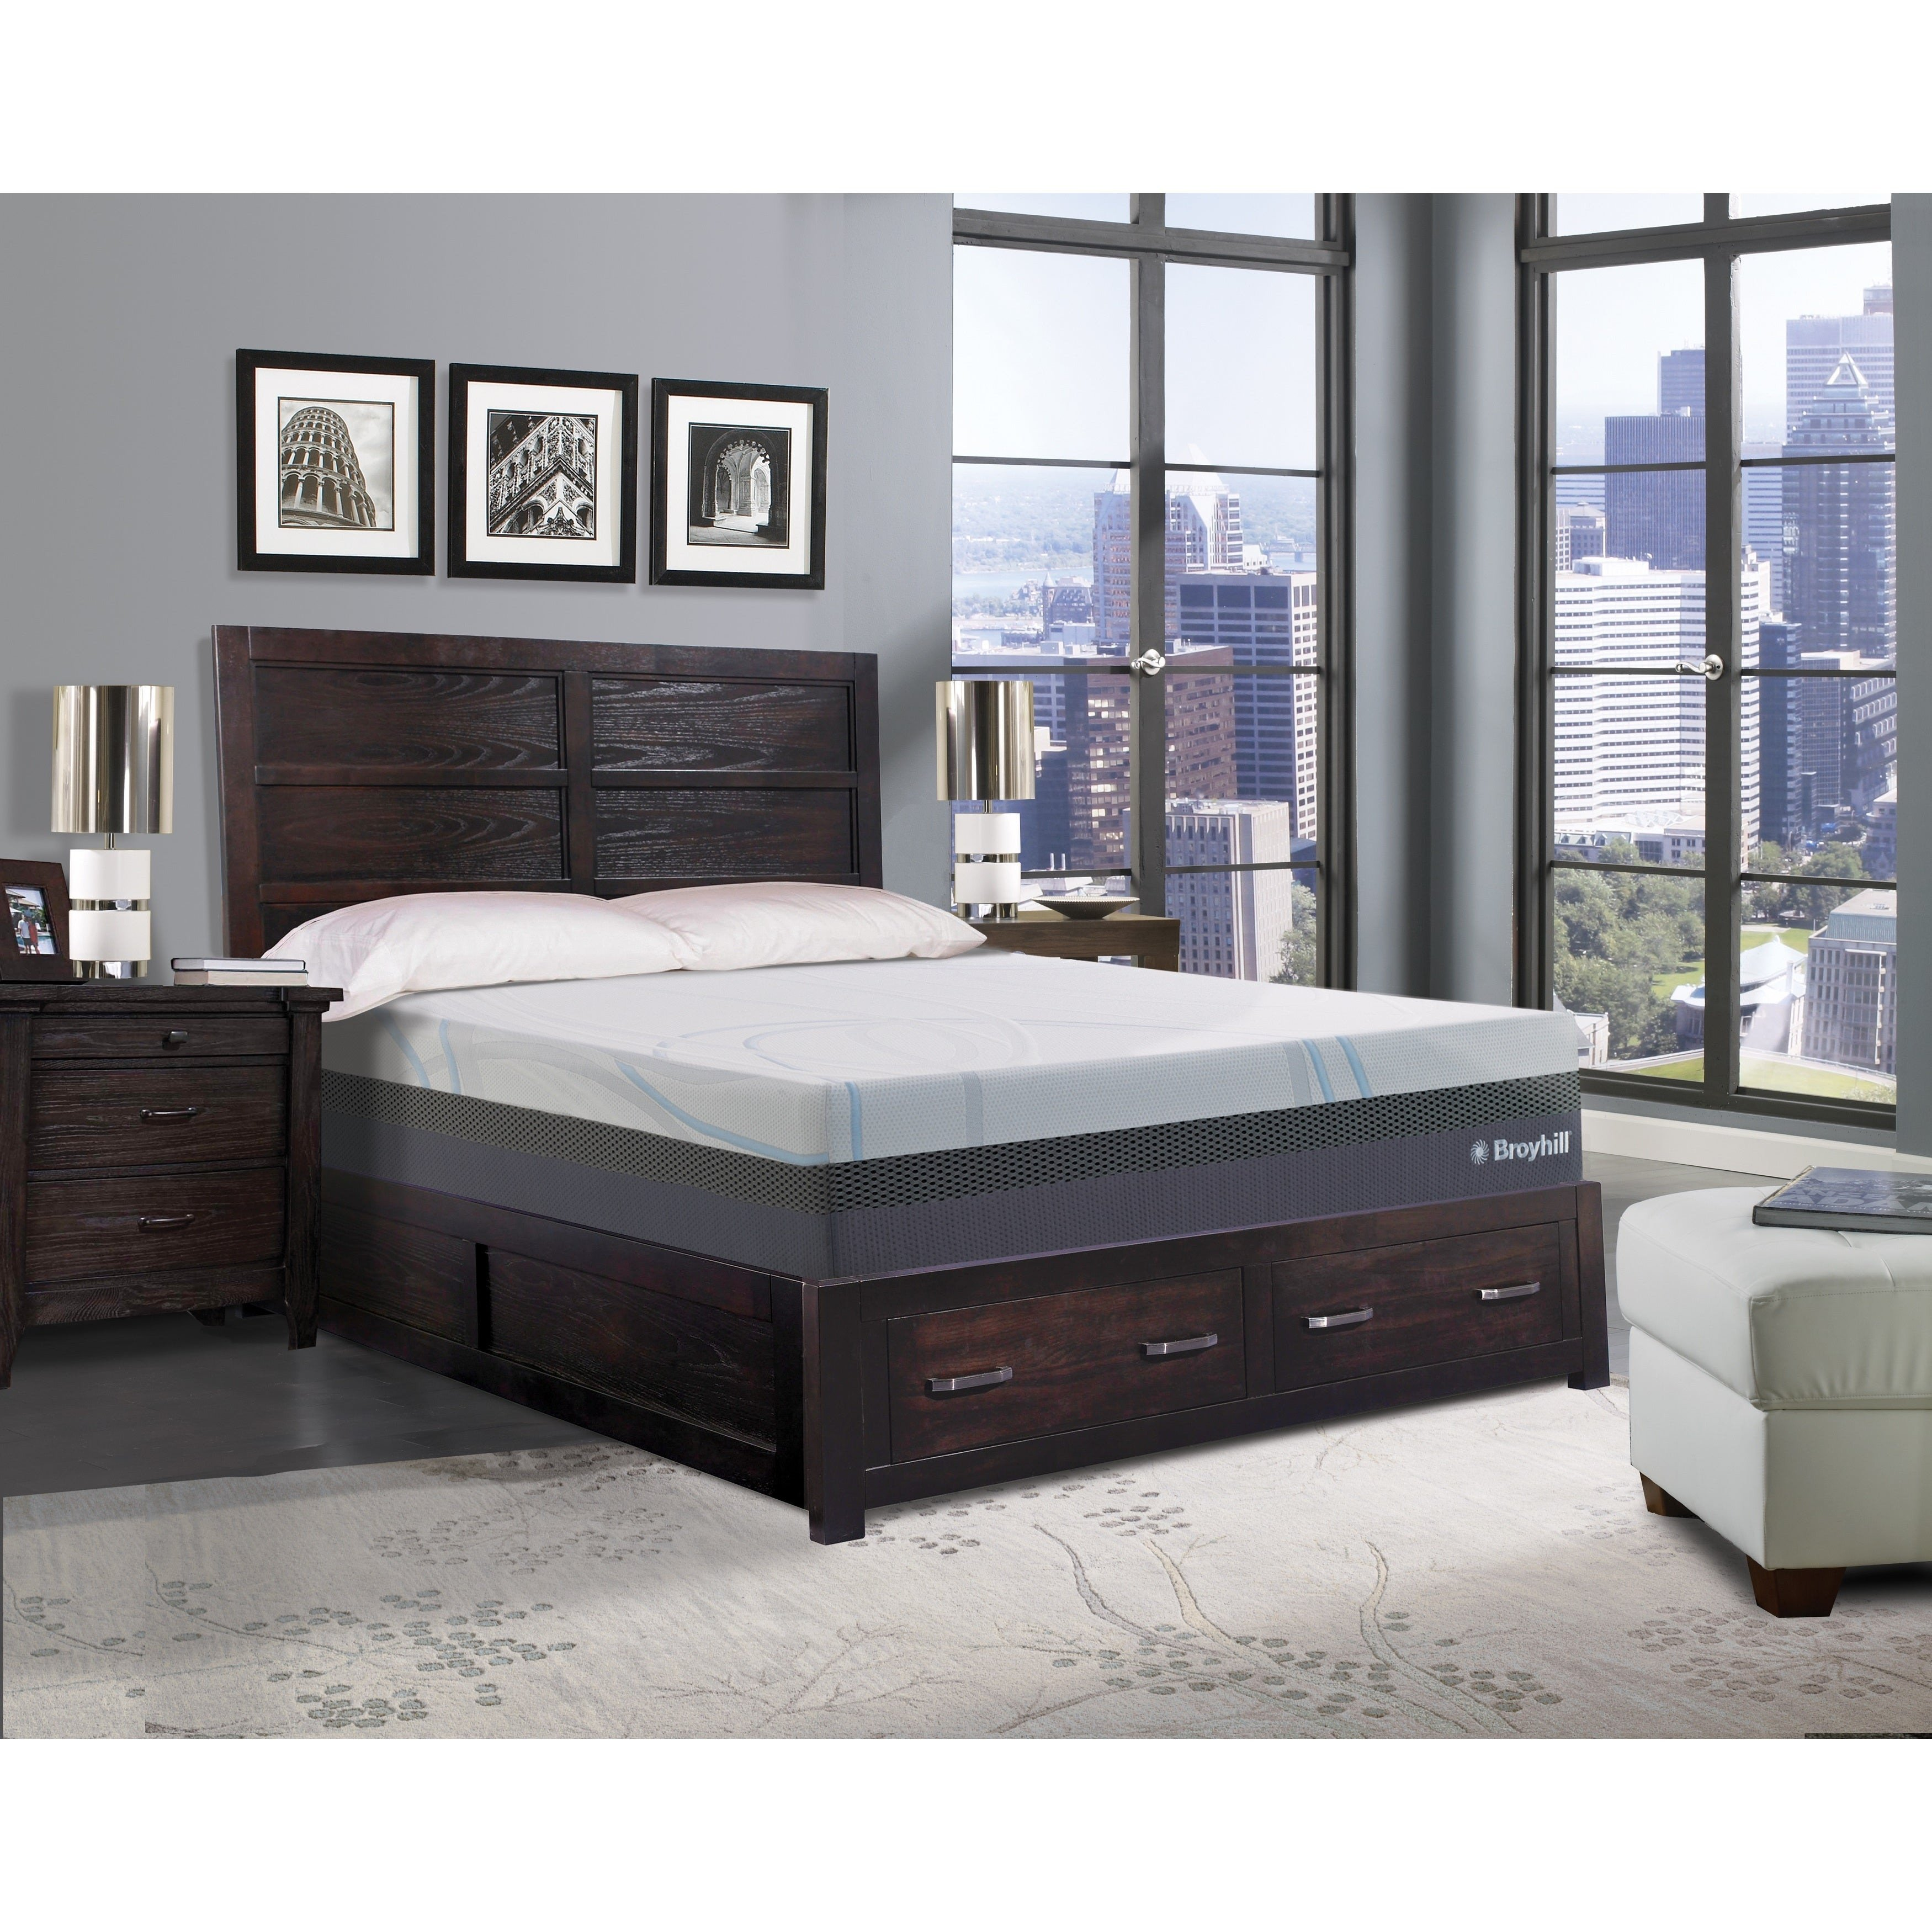 Broyhill King Bedroom Set Best Of Broyhill Bedroom Furniture Sale